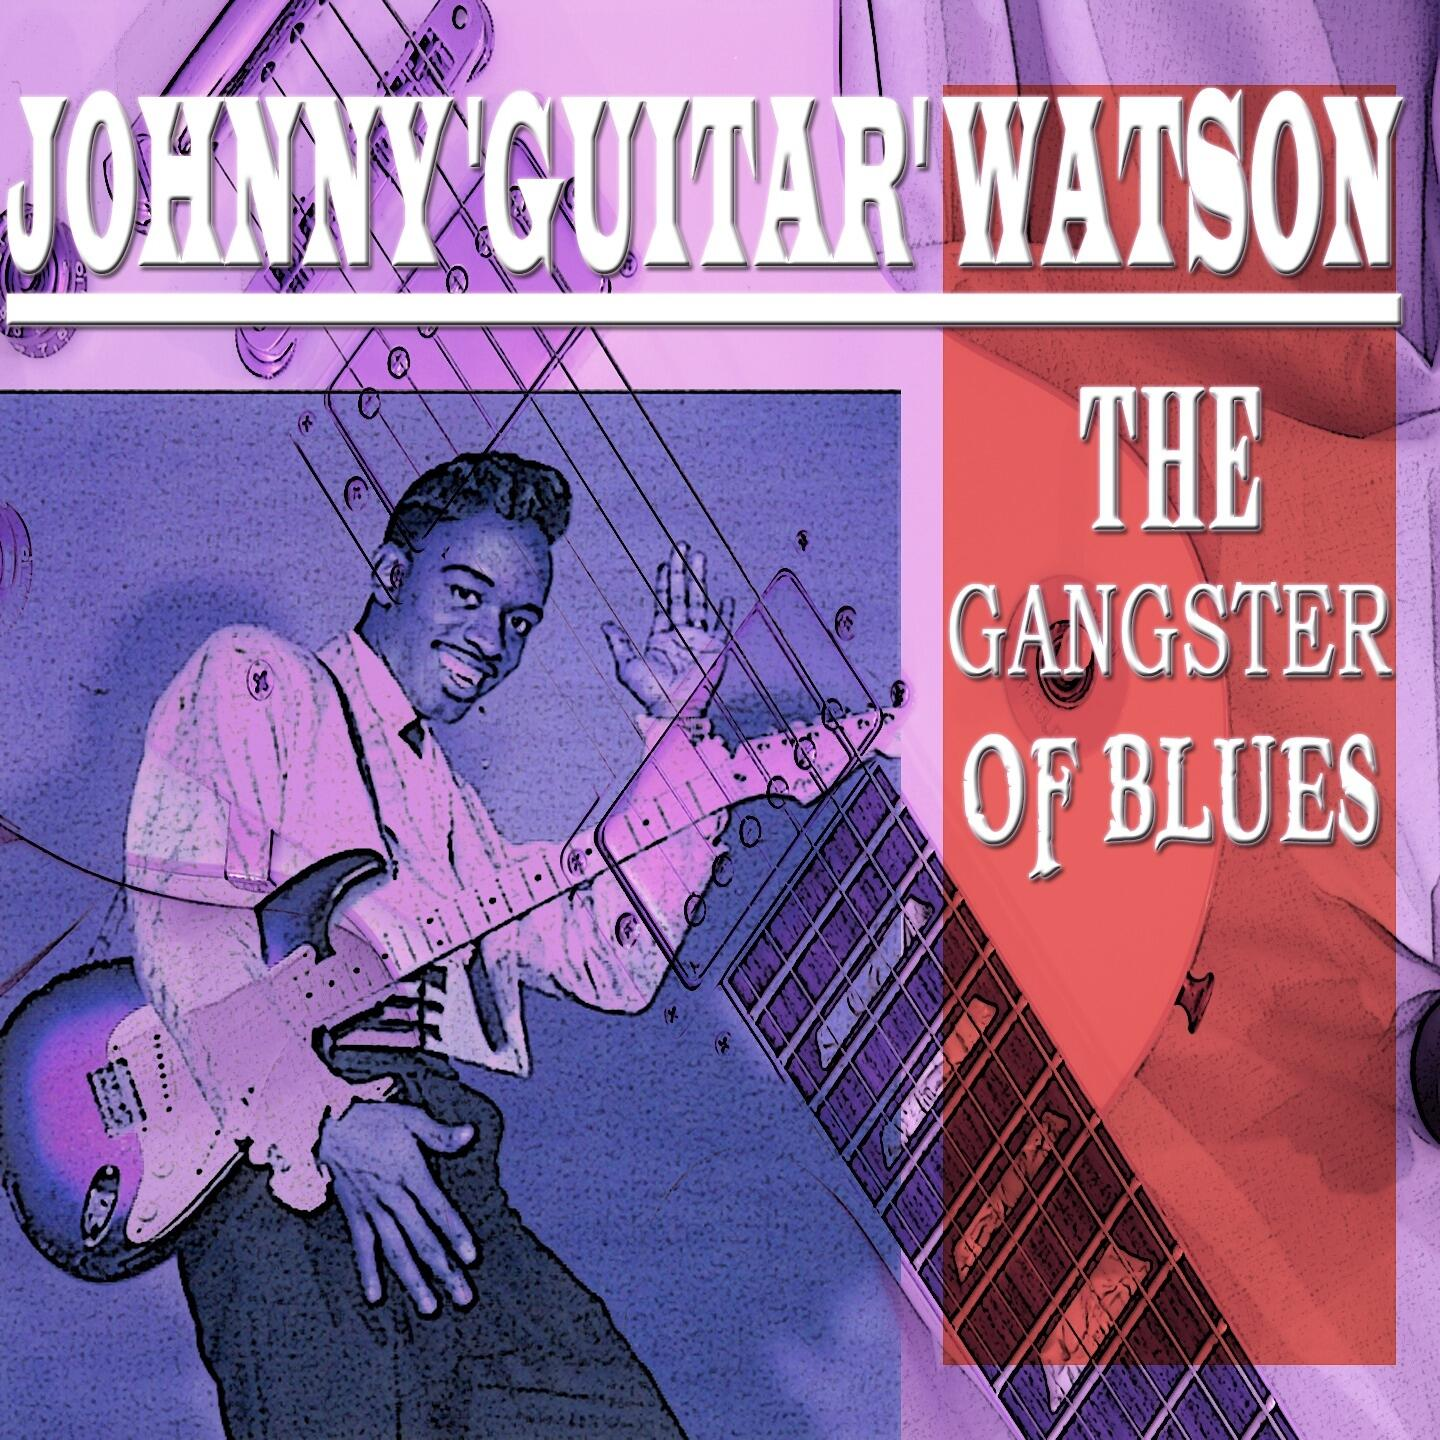 hook me up johnny guitar watson This song is by johnny guitar watson and appears on the album ain't that a bitch (1976) you must enable javascript to view this page this is a requirement of our licensing agreement with music gracenote.